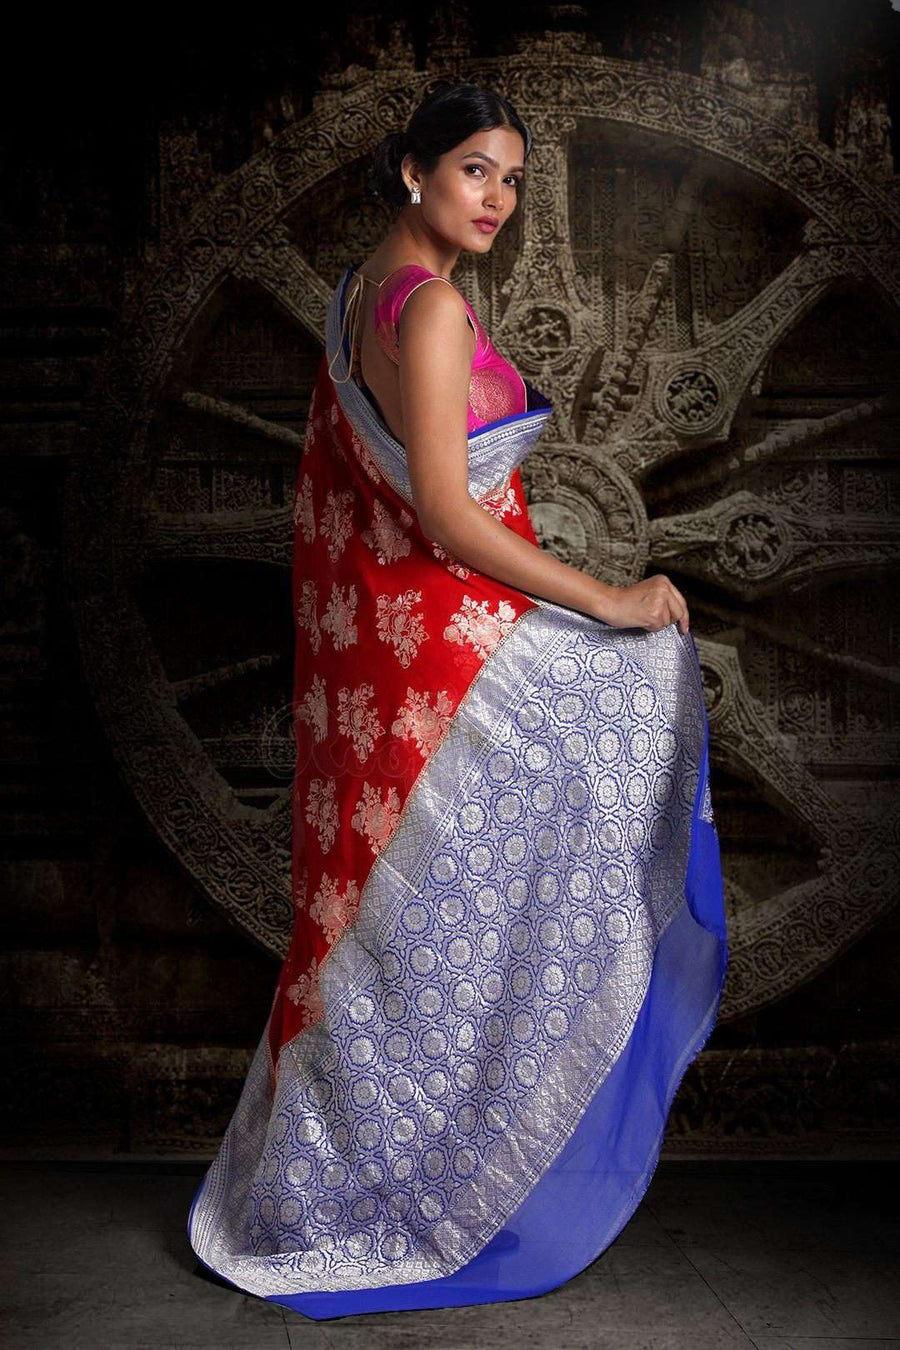 Red Pure Chiffon Saree With Blue Pallu & Floral Designs VARANASI CHRONICLES Roopkatha - A Story of Art